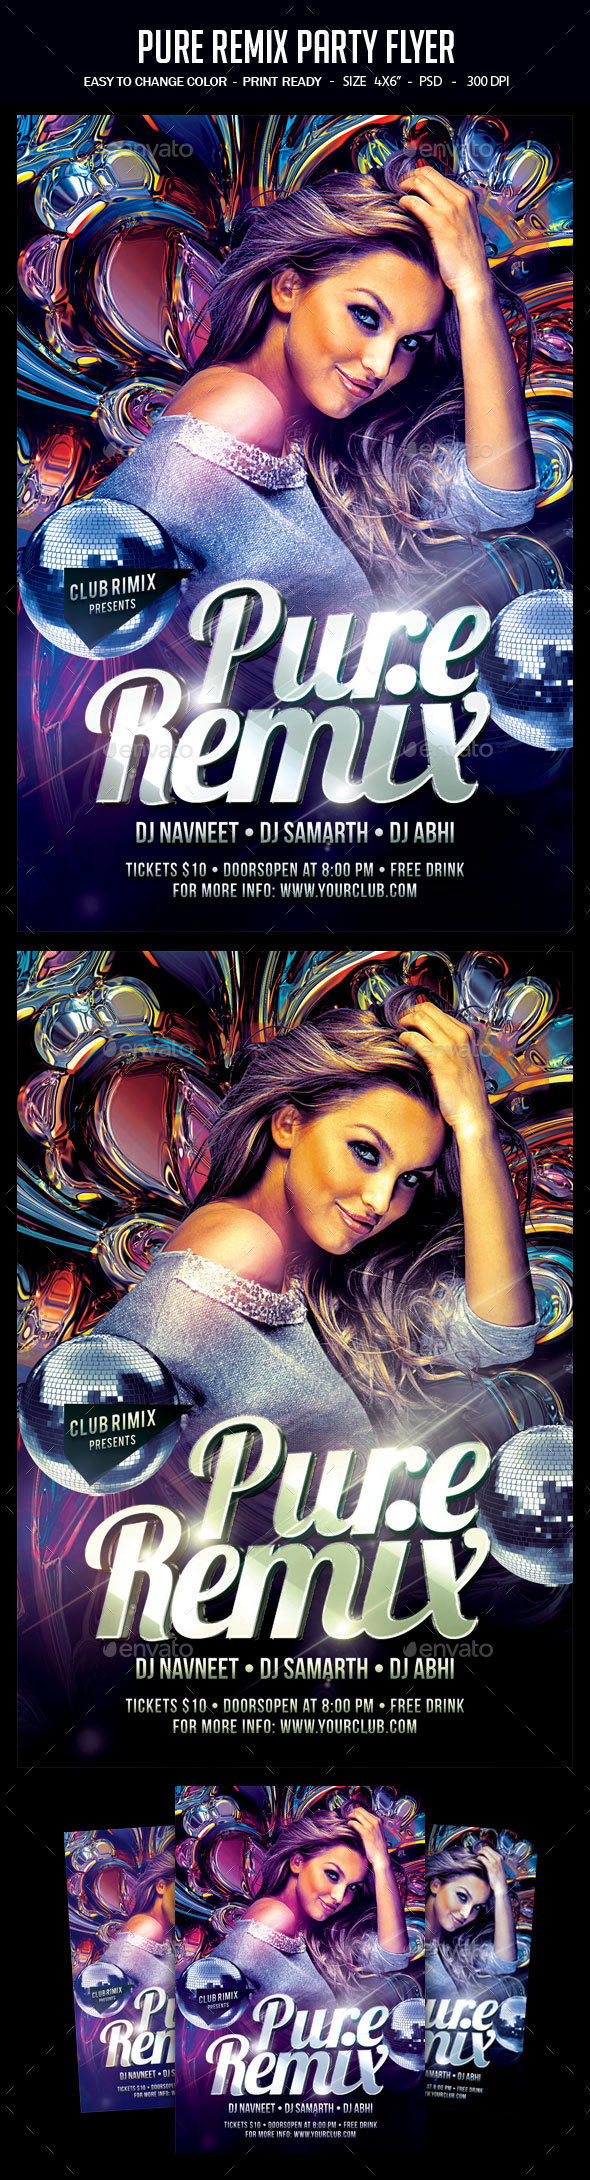 Pure Remix Party Flyer - Clubs & Parties Events